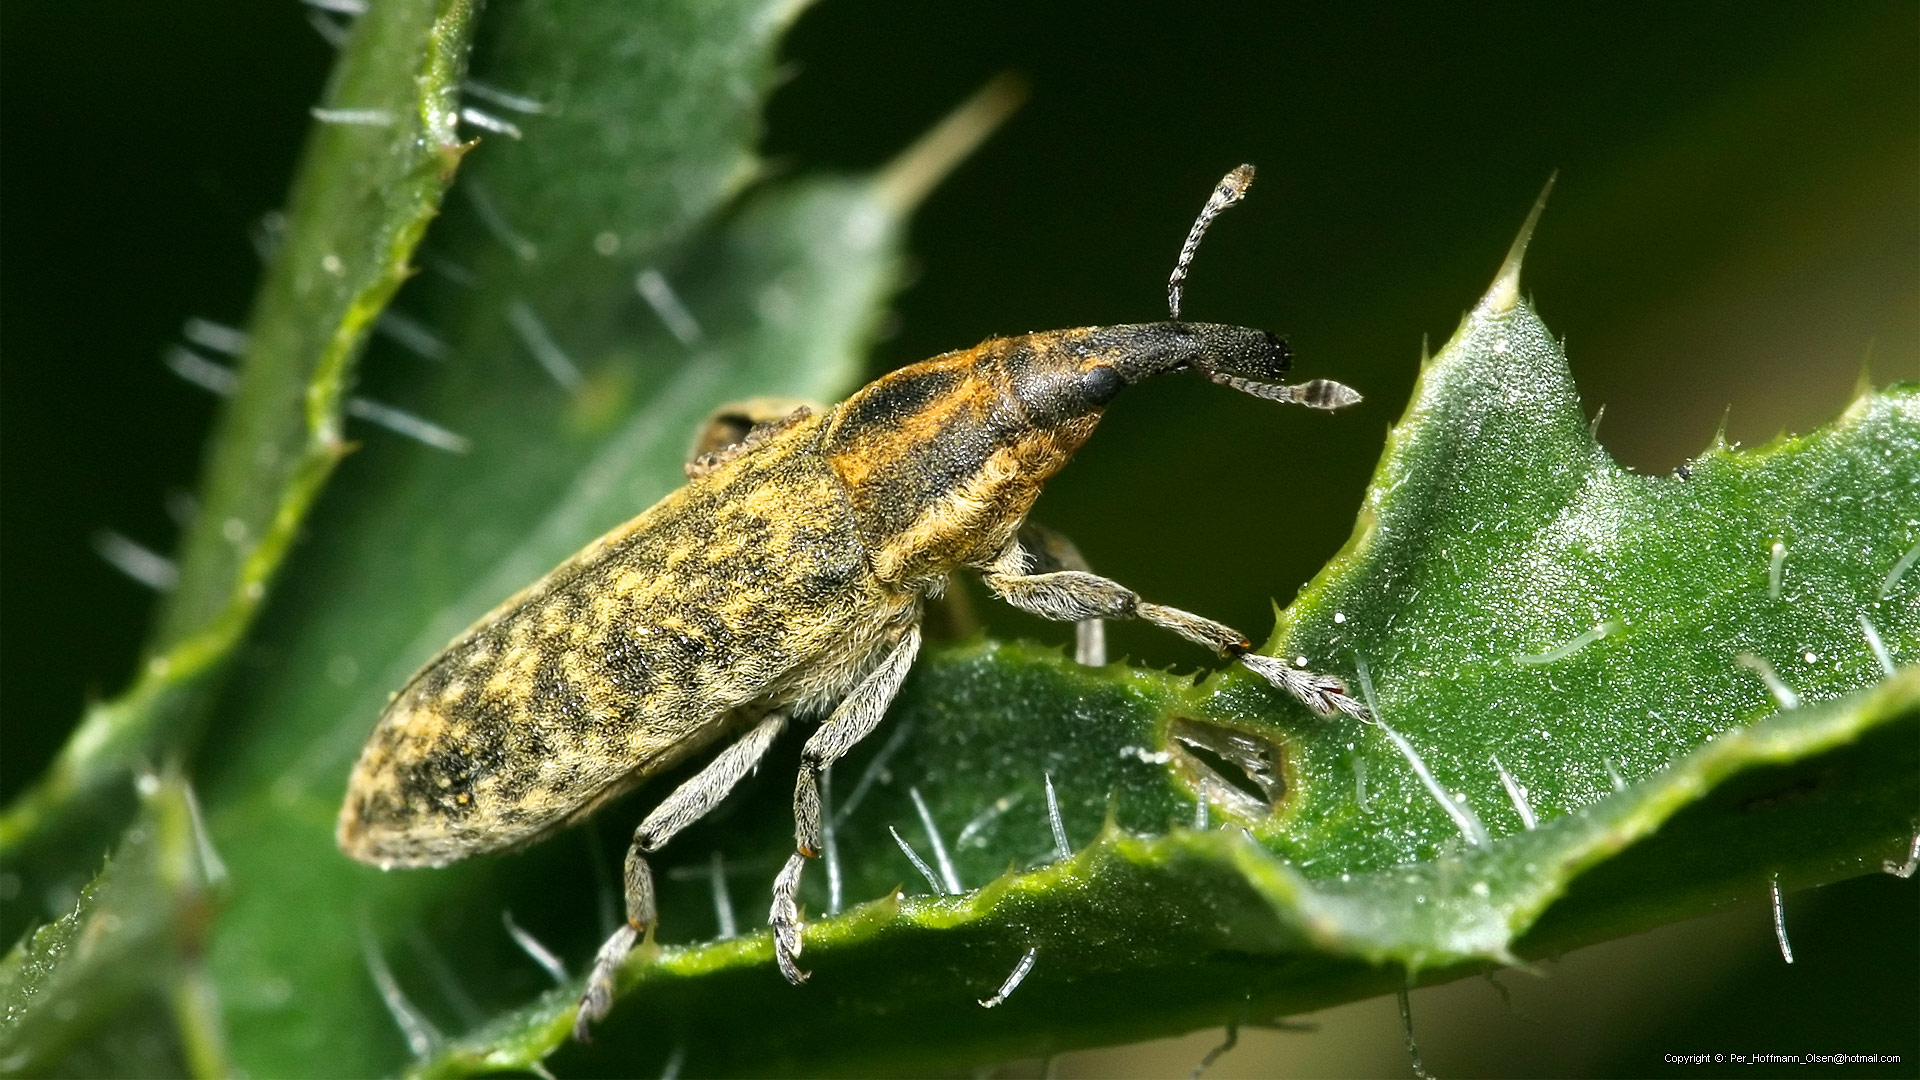 Lixus (Epimeces) cf. filiformis